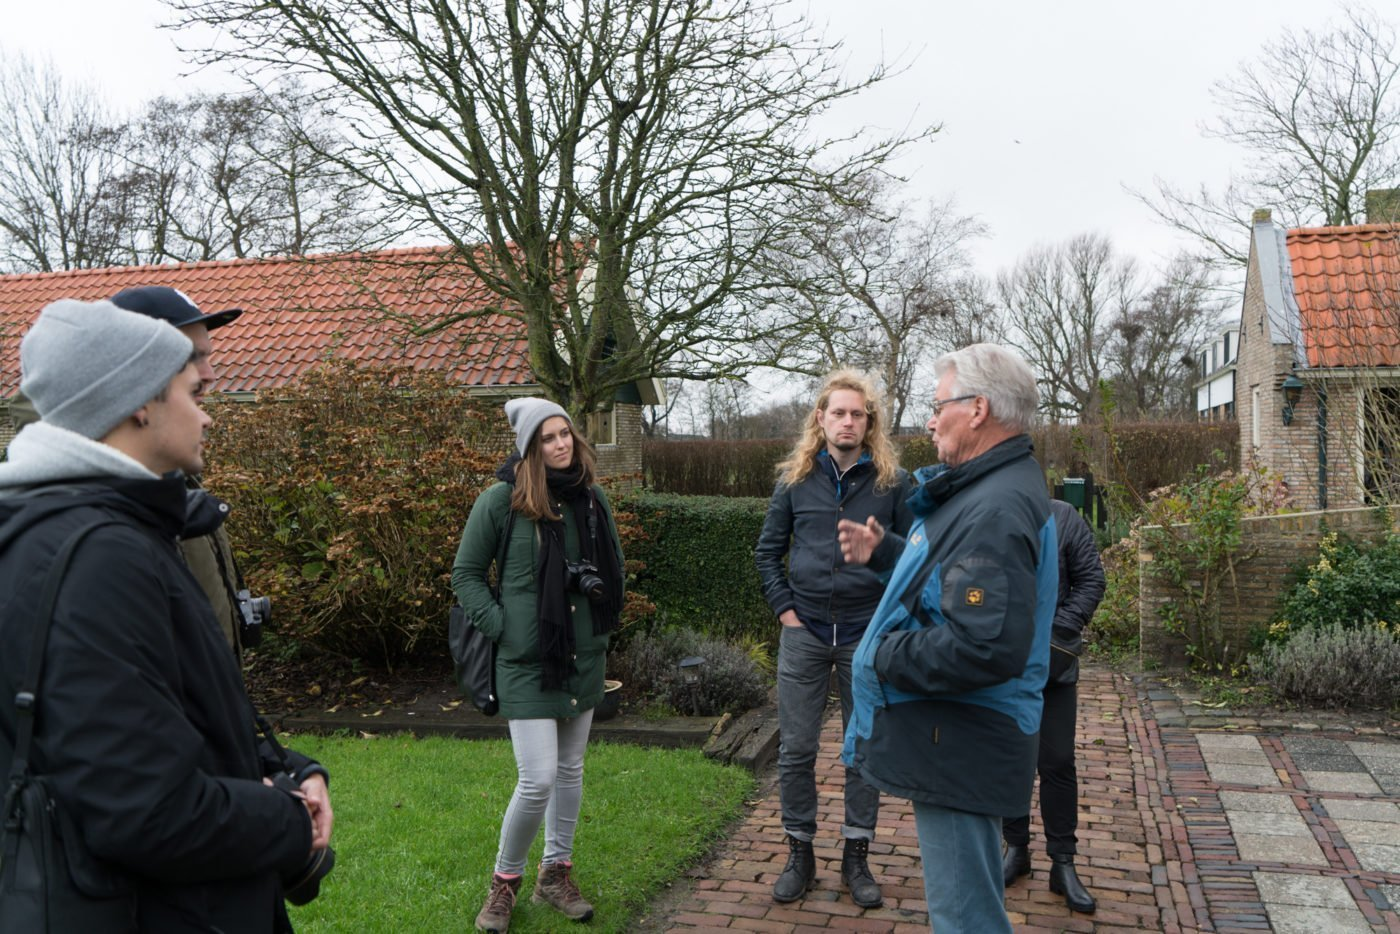 Guided walking tour in Schiermonnikoog